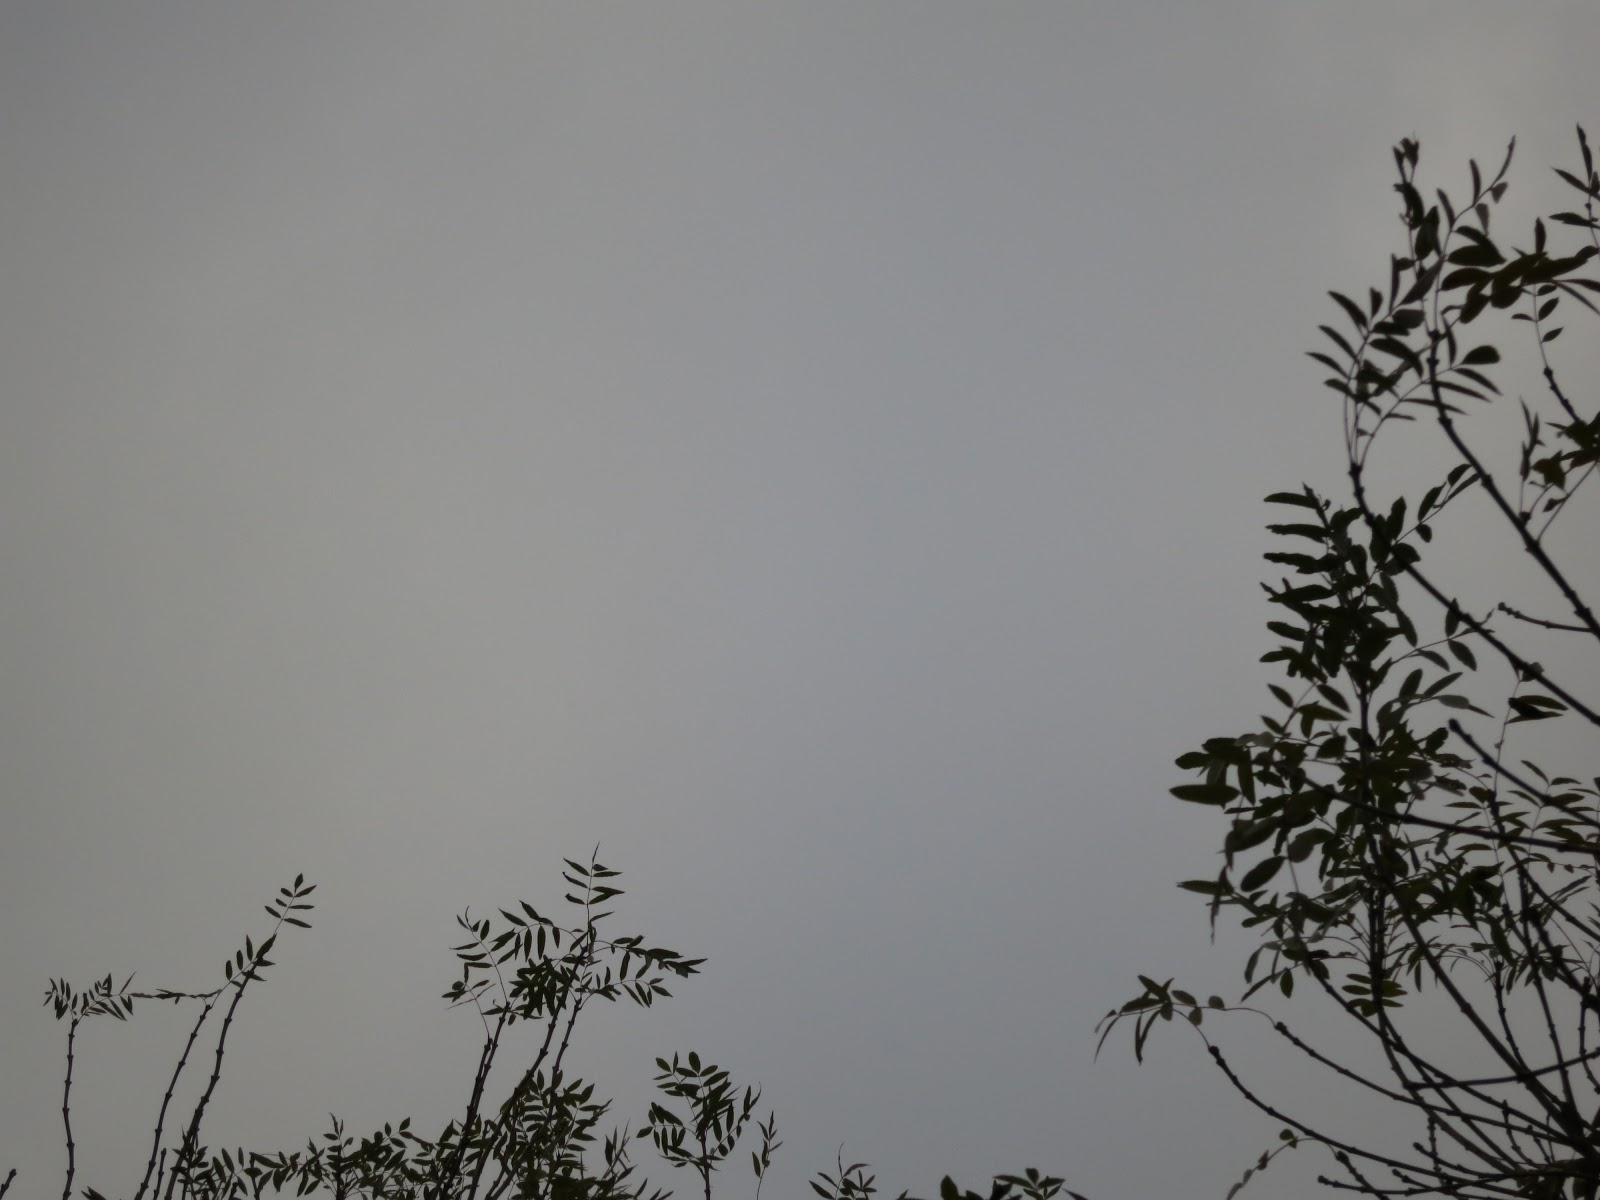 The tops of ash trees silhouetted against a grey sky